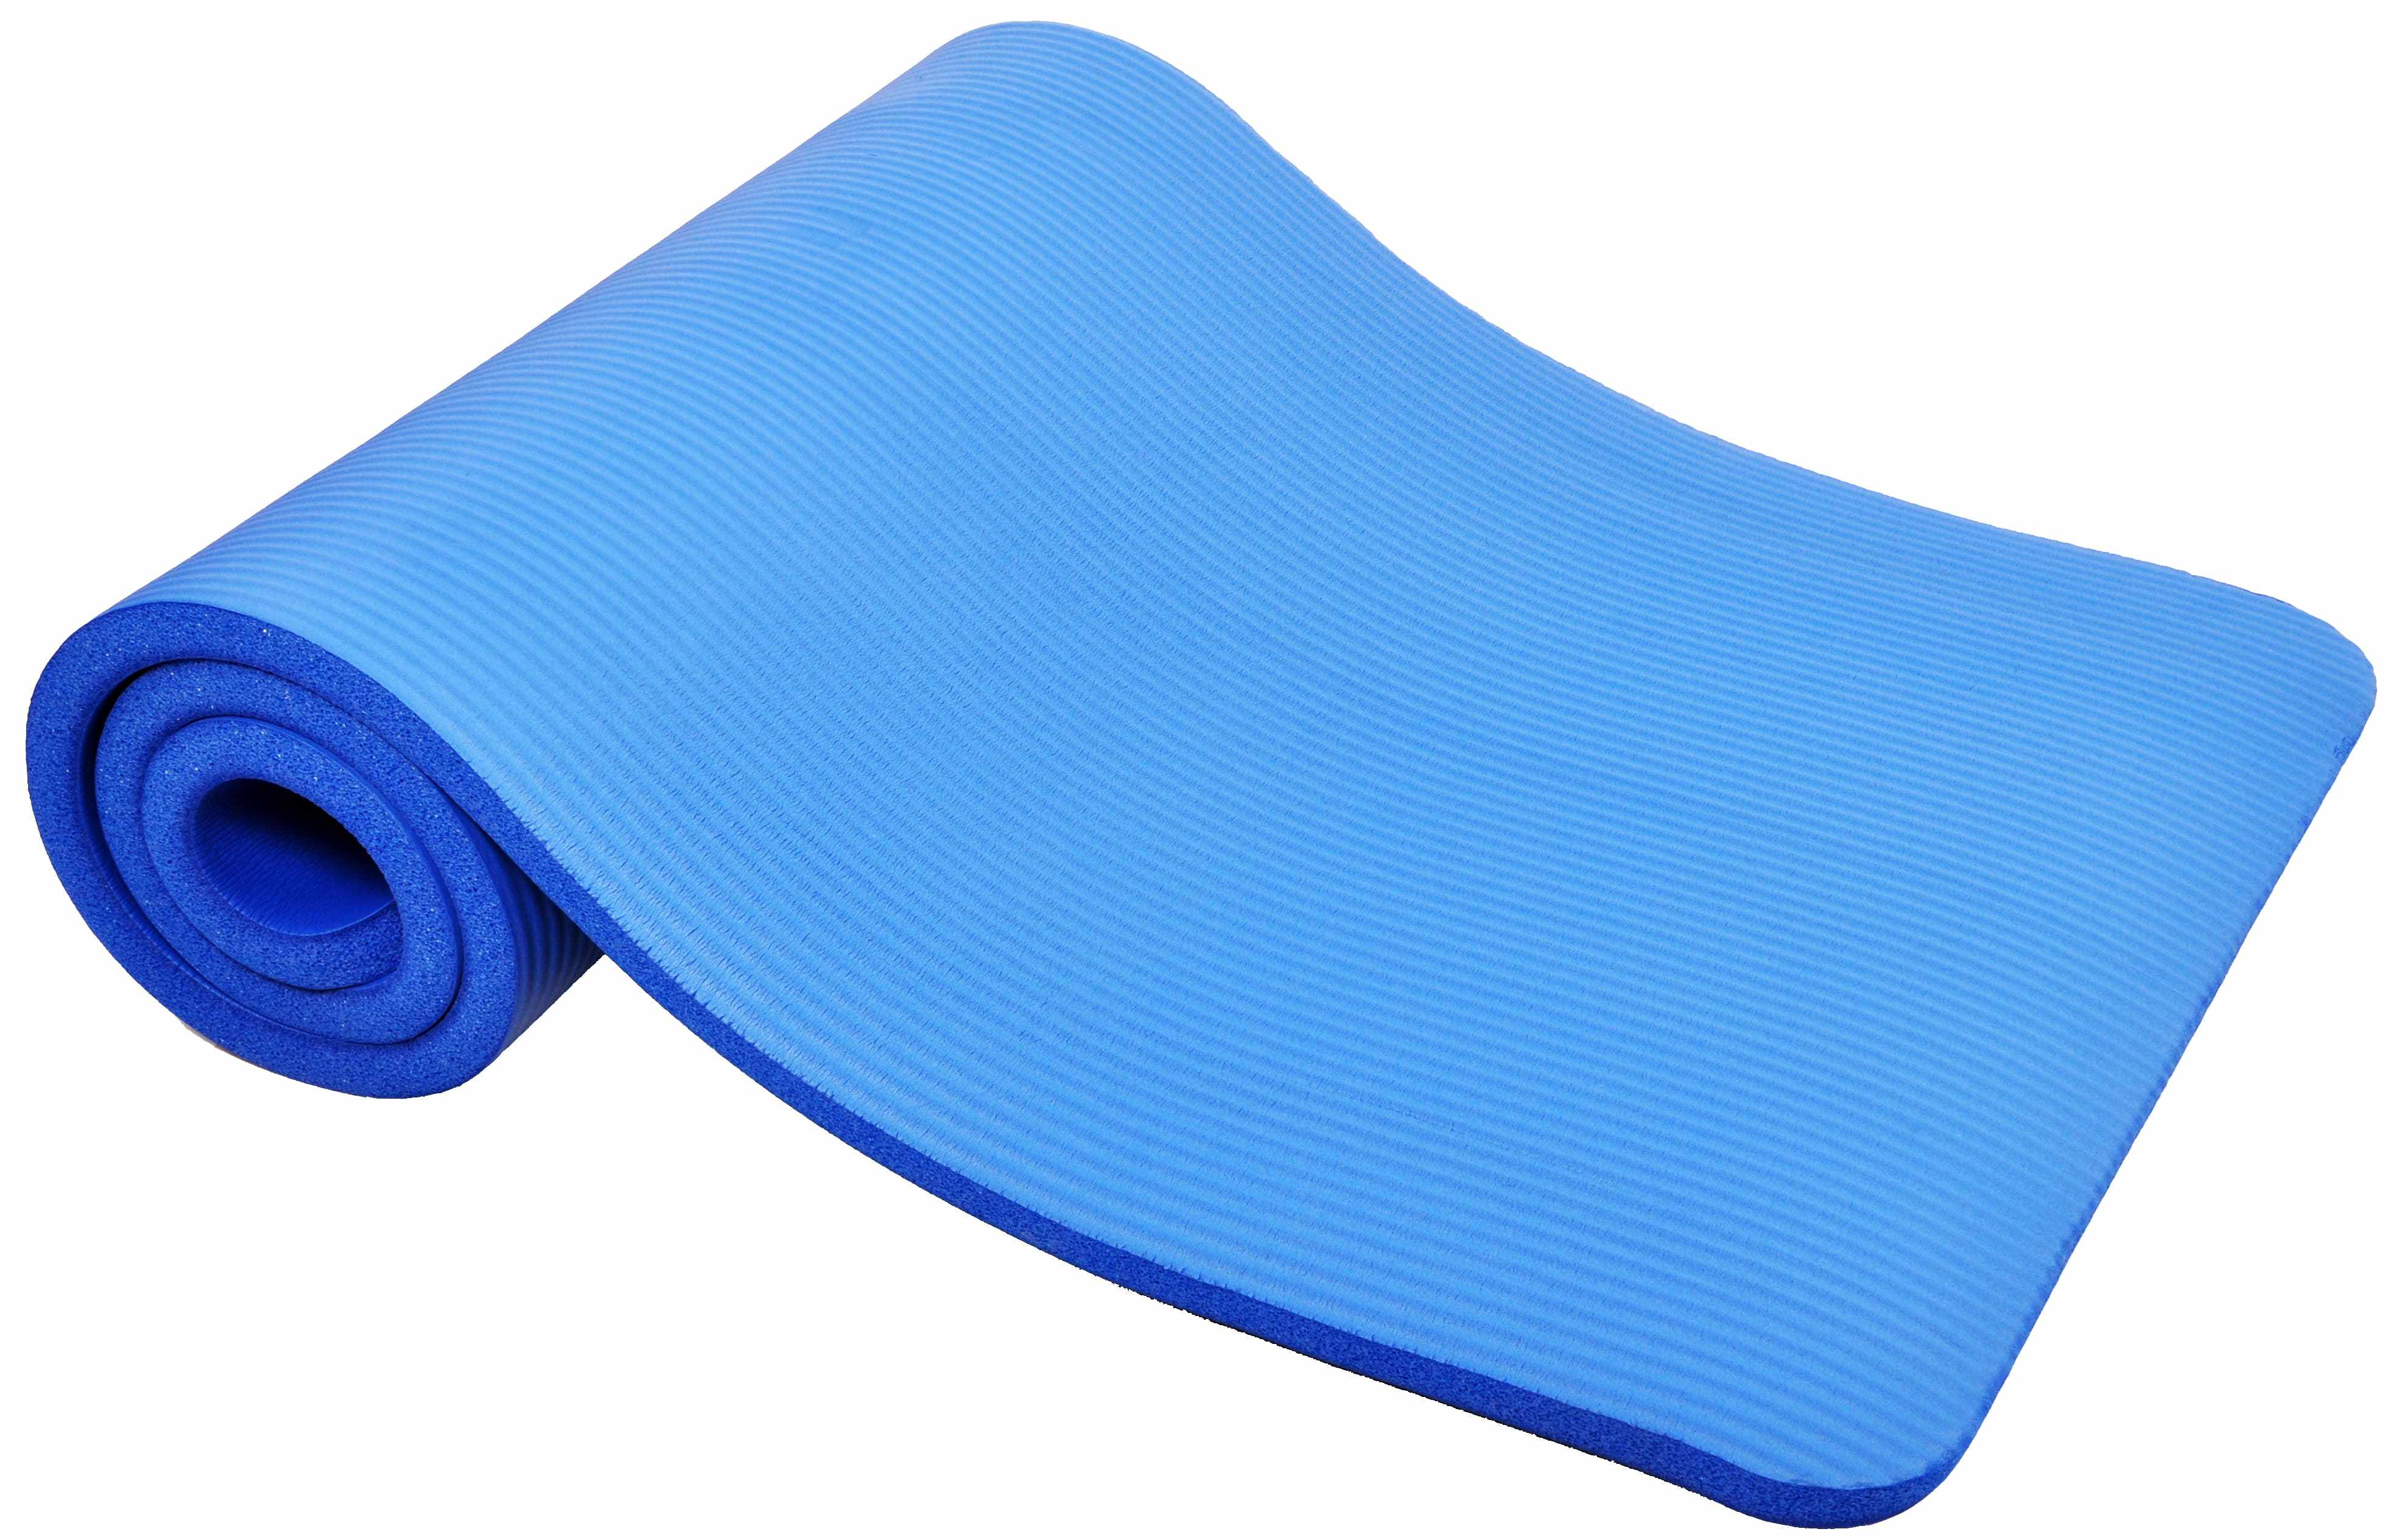 [US Direct] Original BalanceFrom GoCloud All-Purpose 1-Inch Extra Thick High Density Anti-Tear Exercise Yoga Mat with Carrying Strap, Black Blue